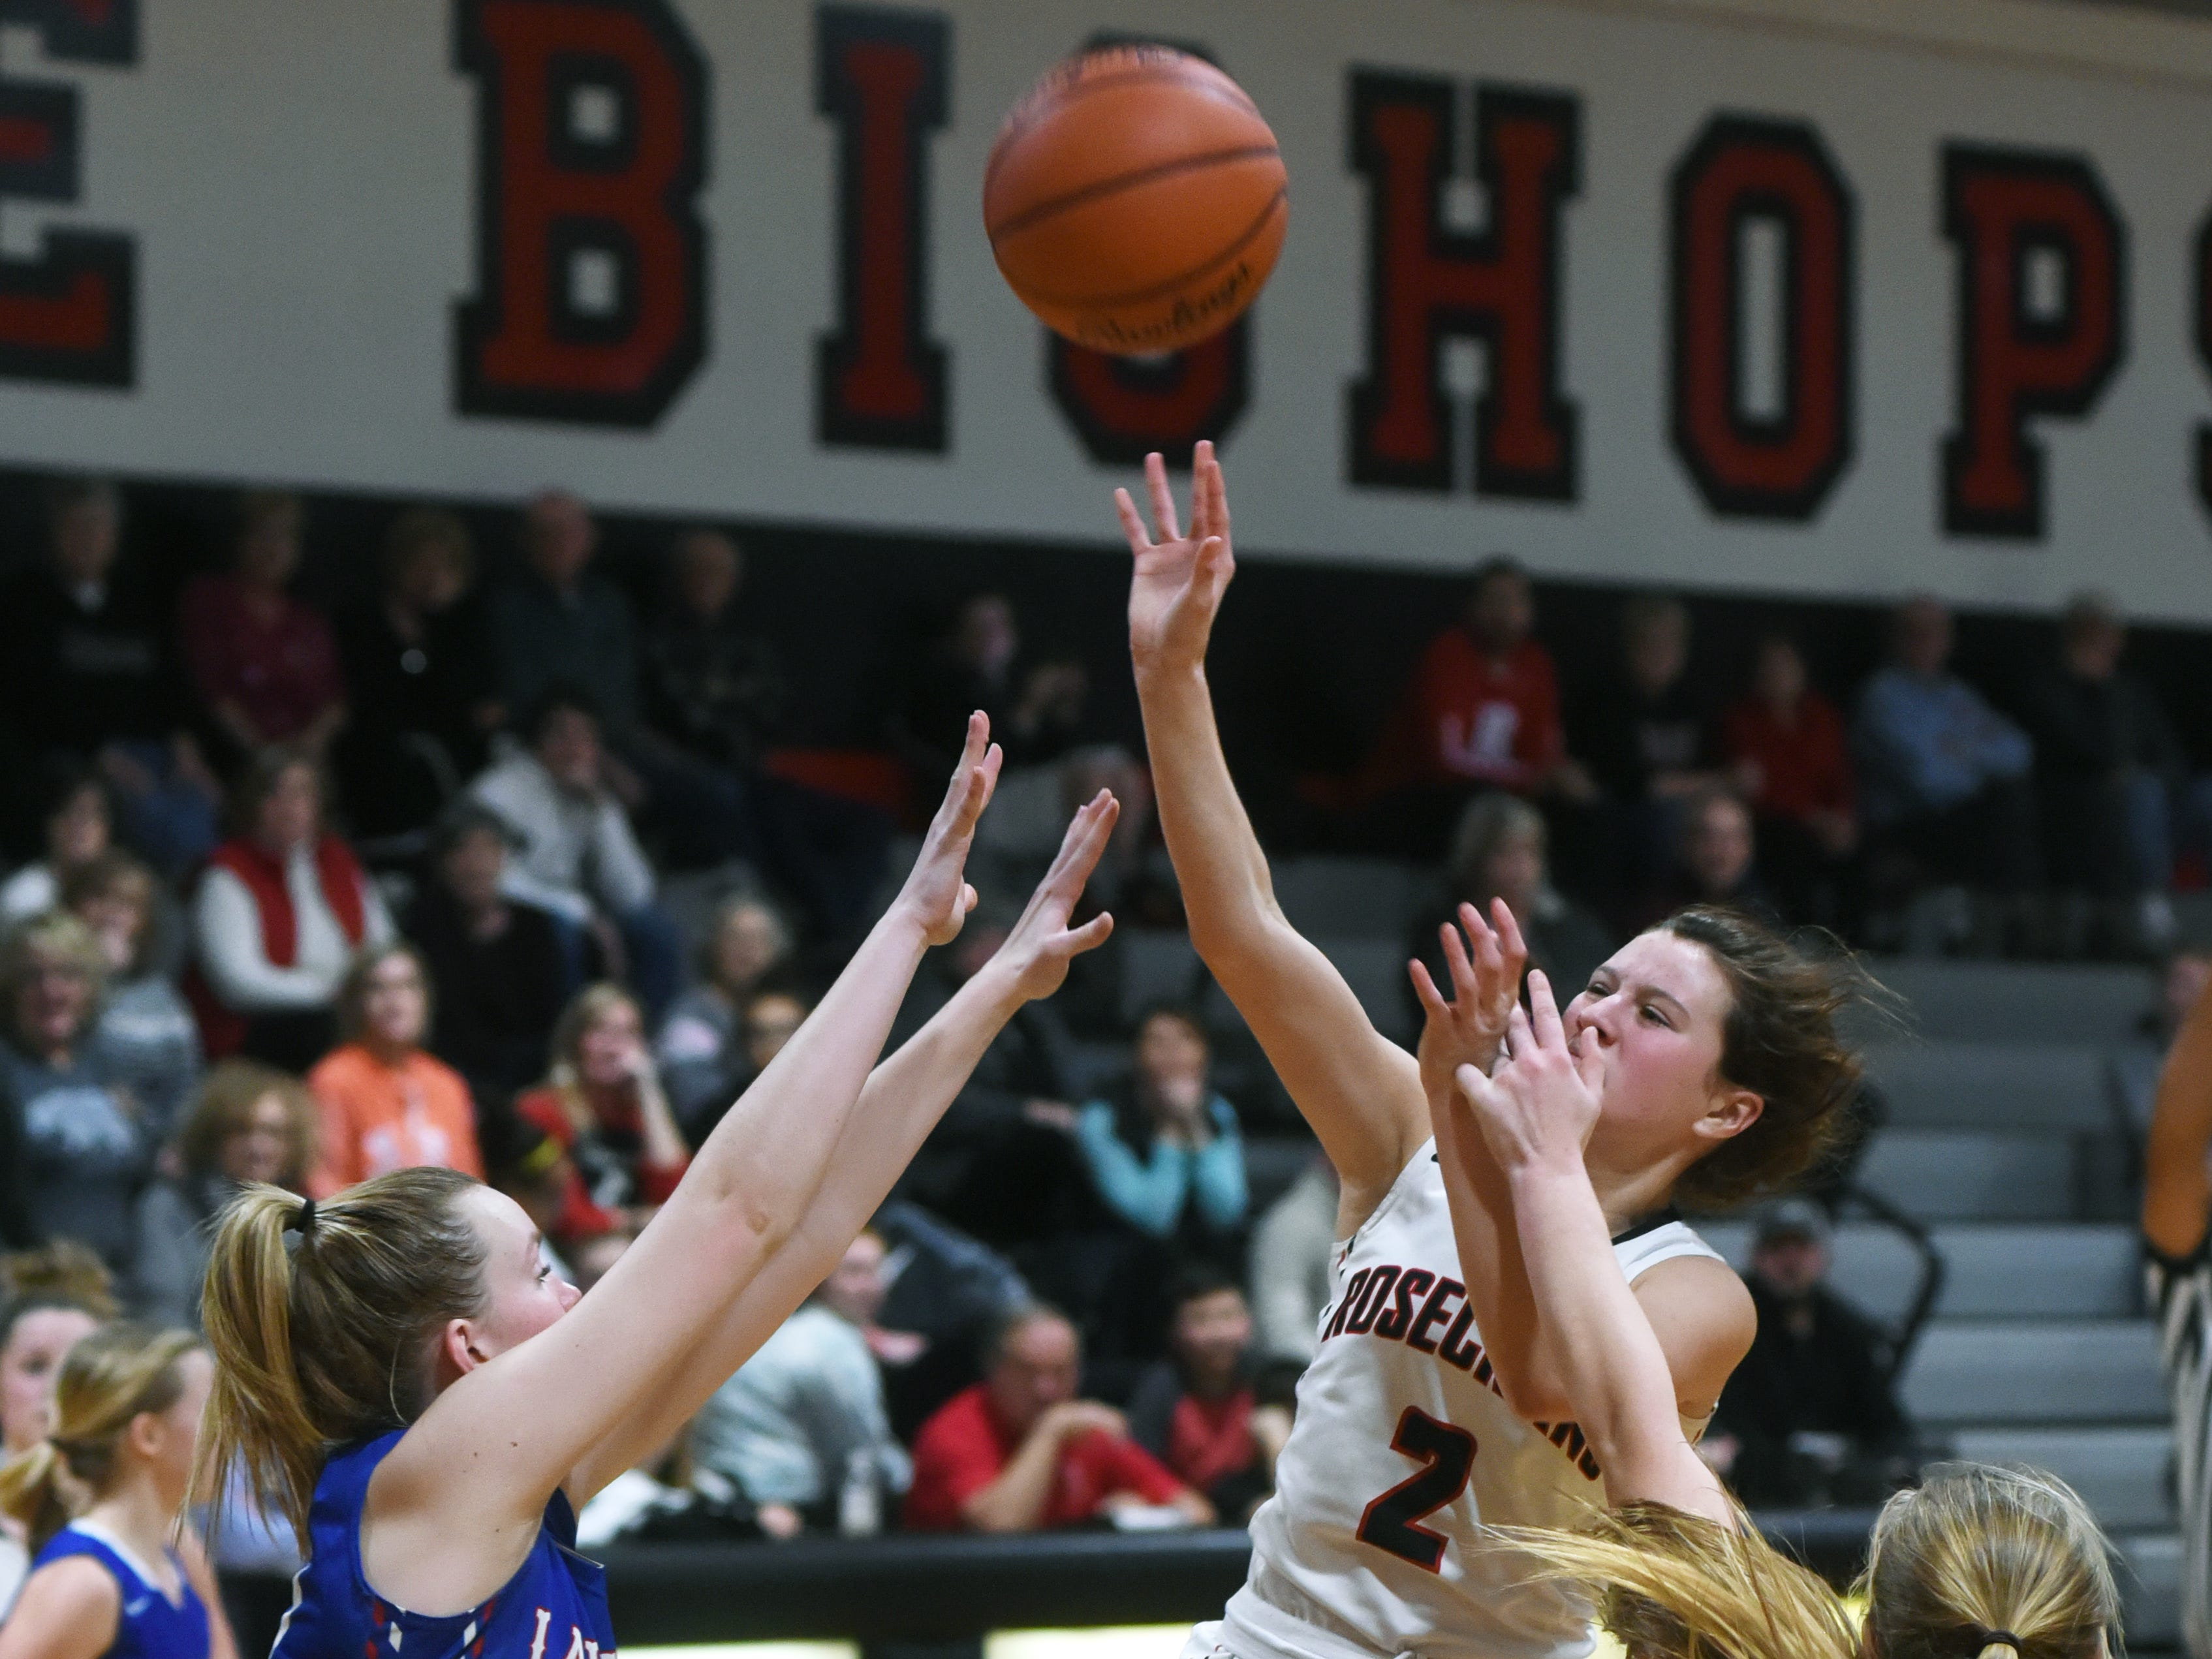 Kailey Zemba, of Rosecrans, shoots in the lane against Lakewood on Monday night at Rogge Gymnasium.